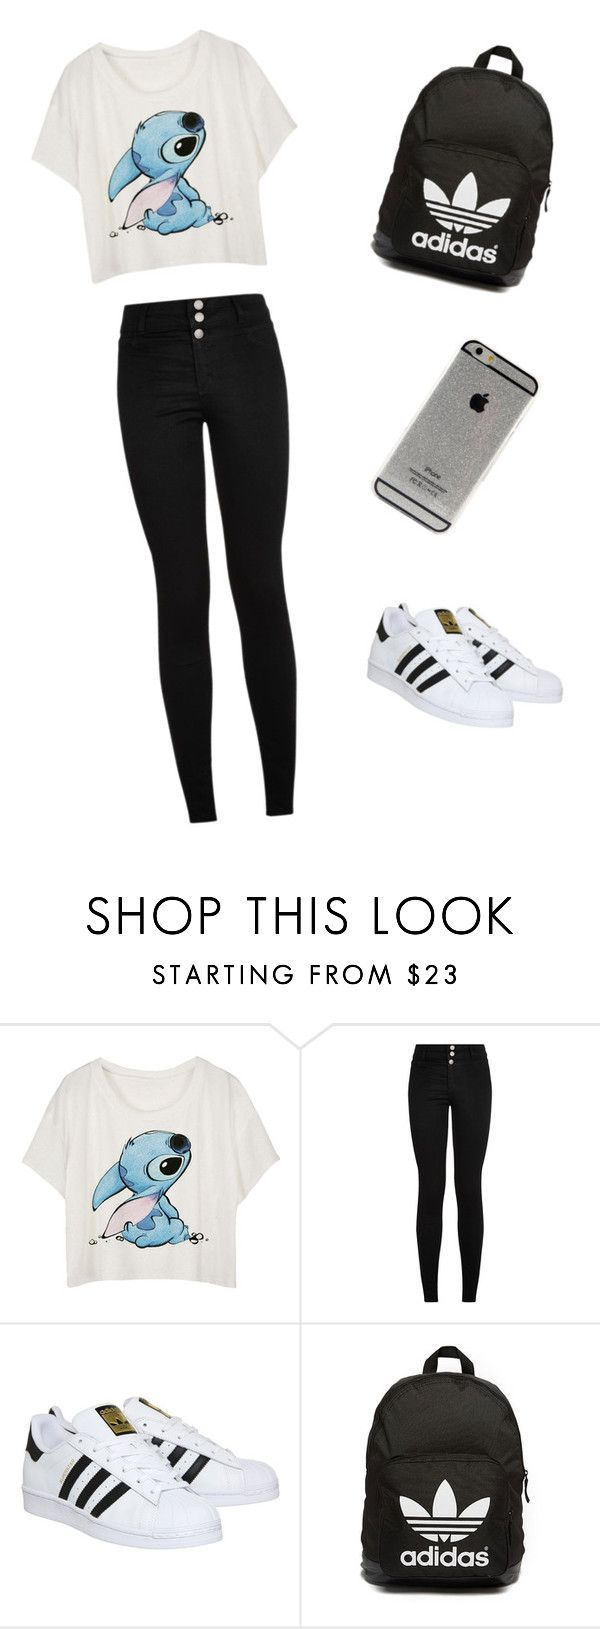 """#Mégane #Meilleure !! "" by cindygino ❤ liked on Polyvore featuring mode, adidas et adidas Originals"